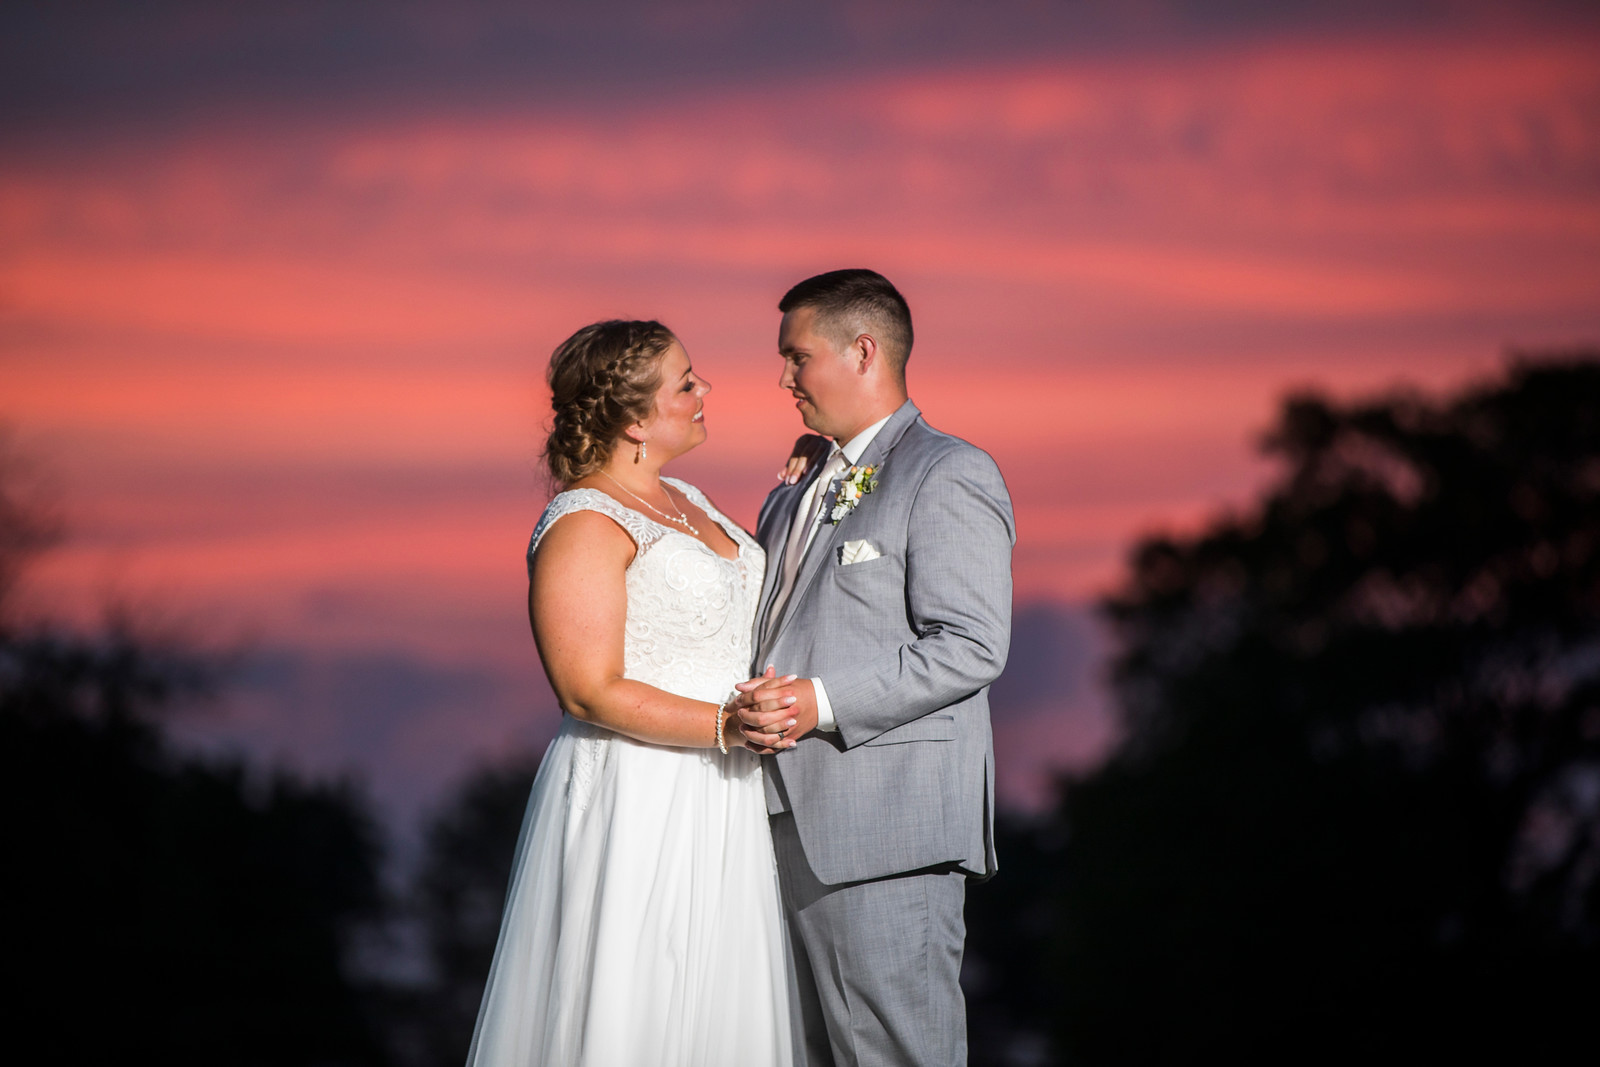 Kaitlyn + Tim at Lake Lawn Resort (July 13, 2019)